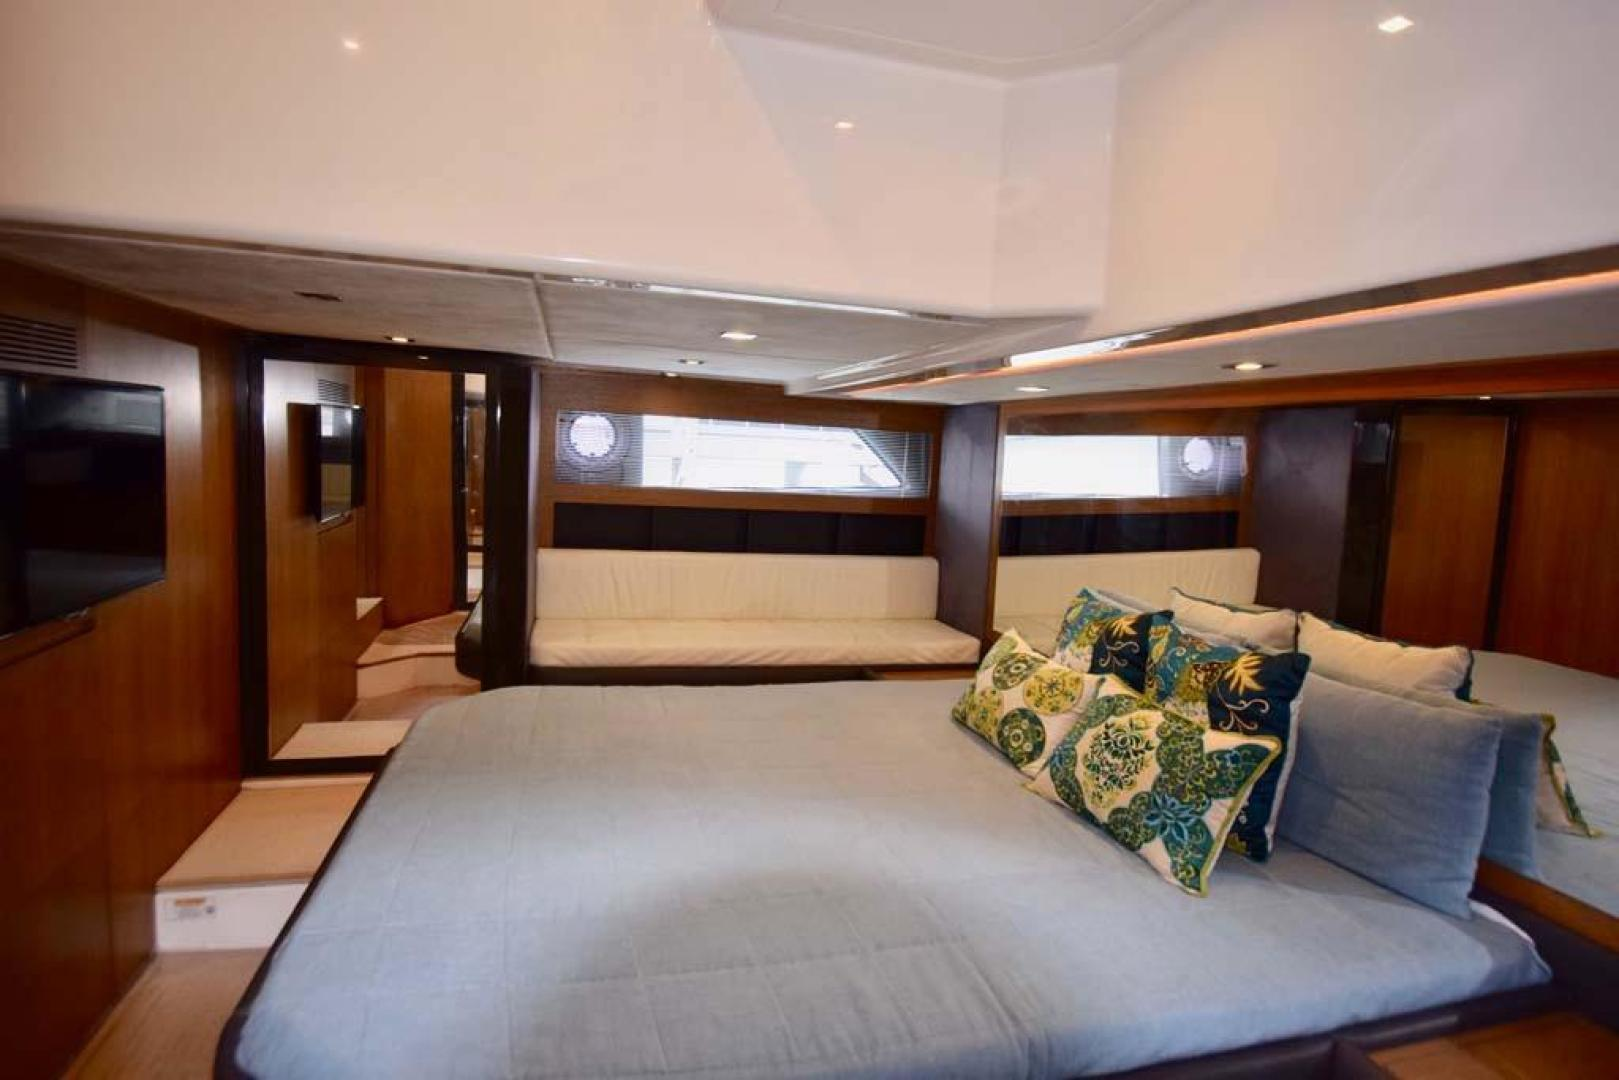 Azimut-48 ATLANTIS 2013-Spectrum Miami-Florida-United States-Owners Quarters with Stbd. Side Settee-369686 | Thumbnail